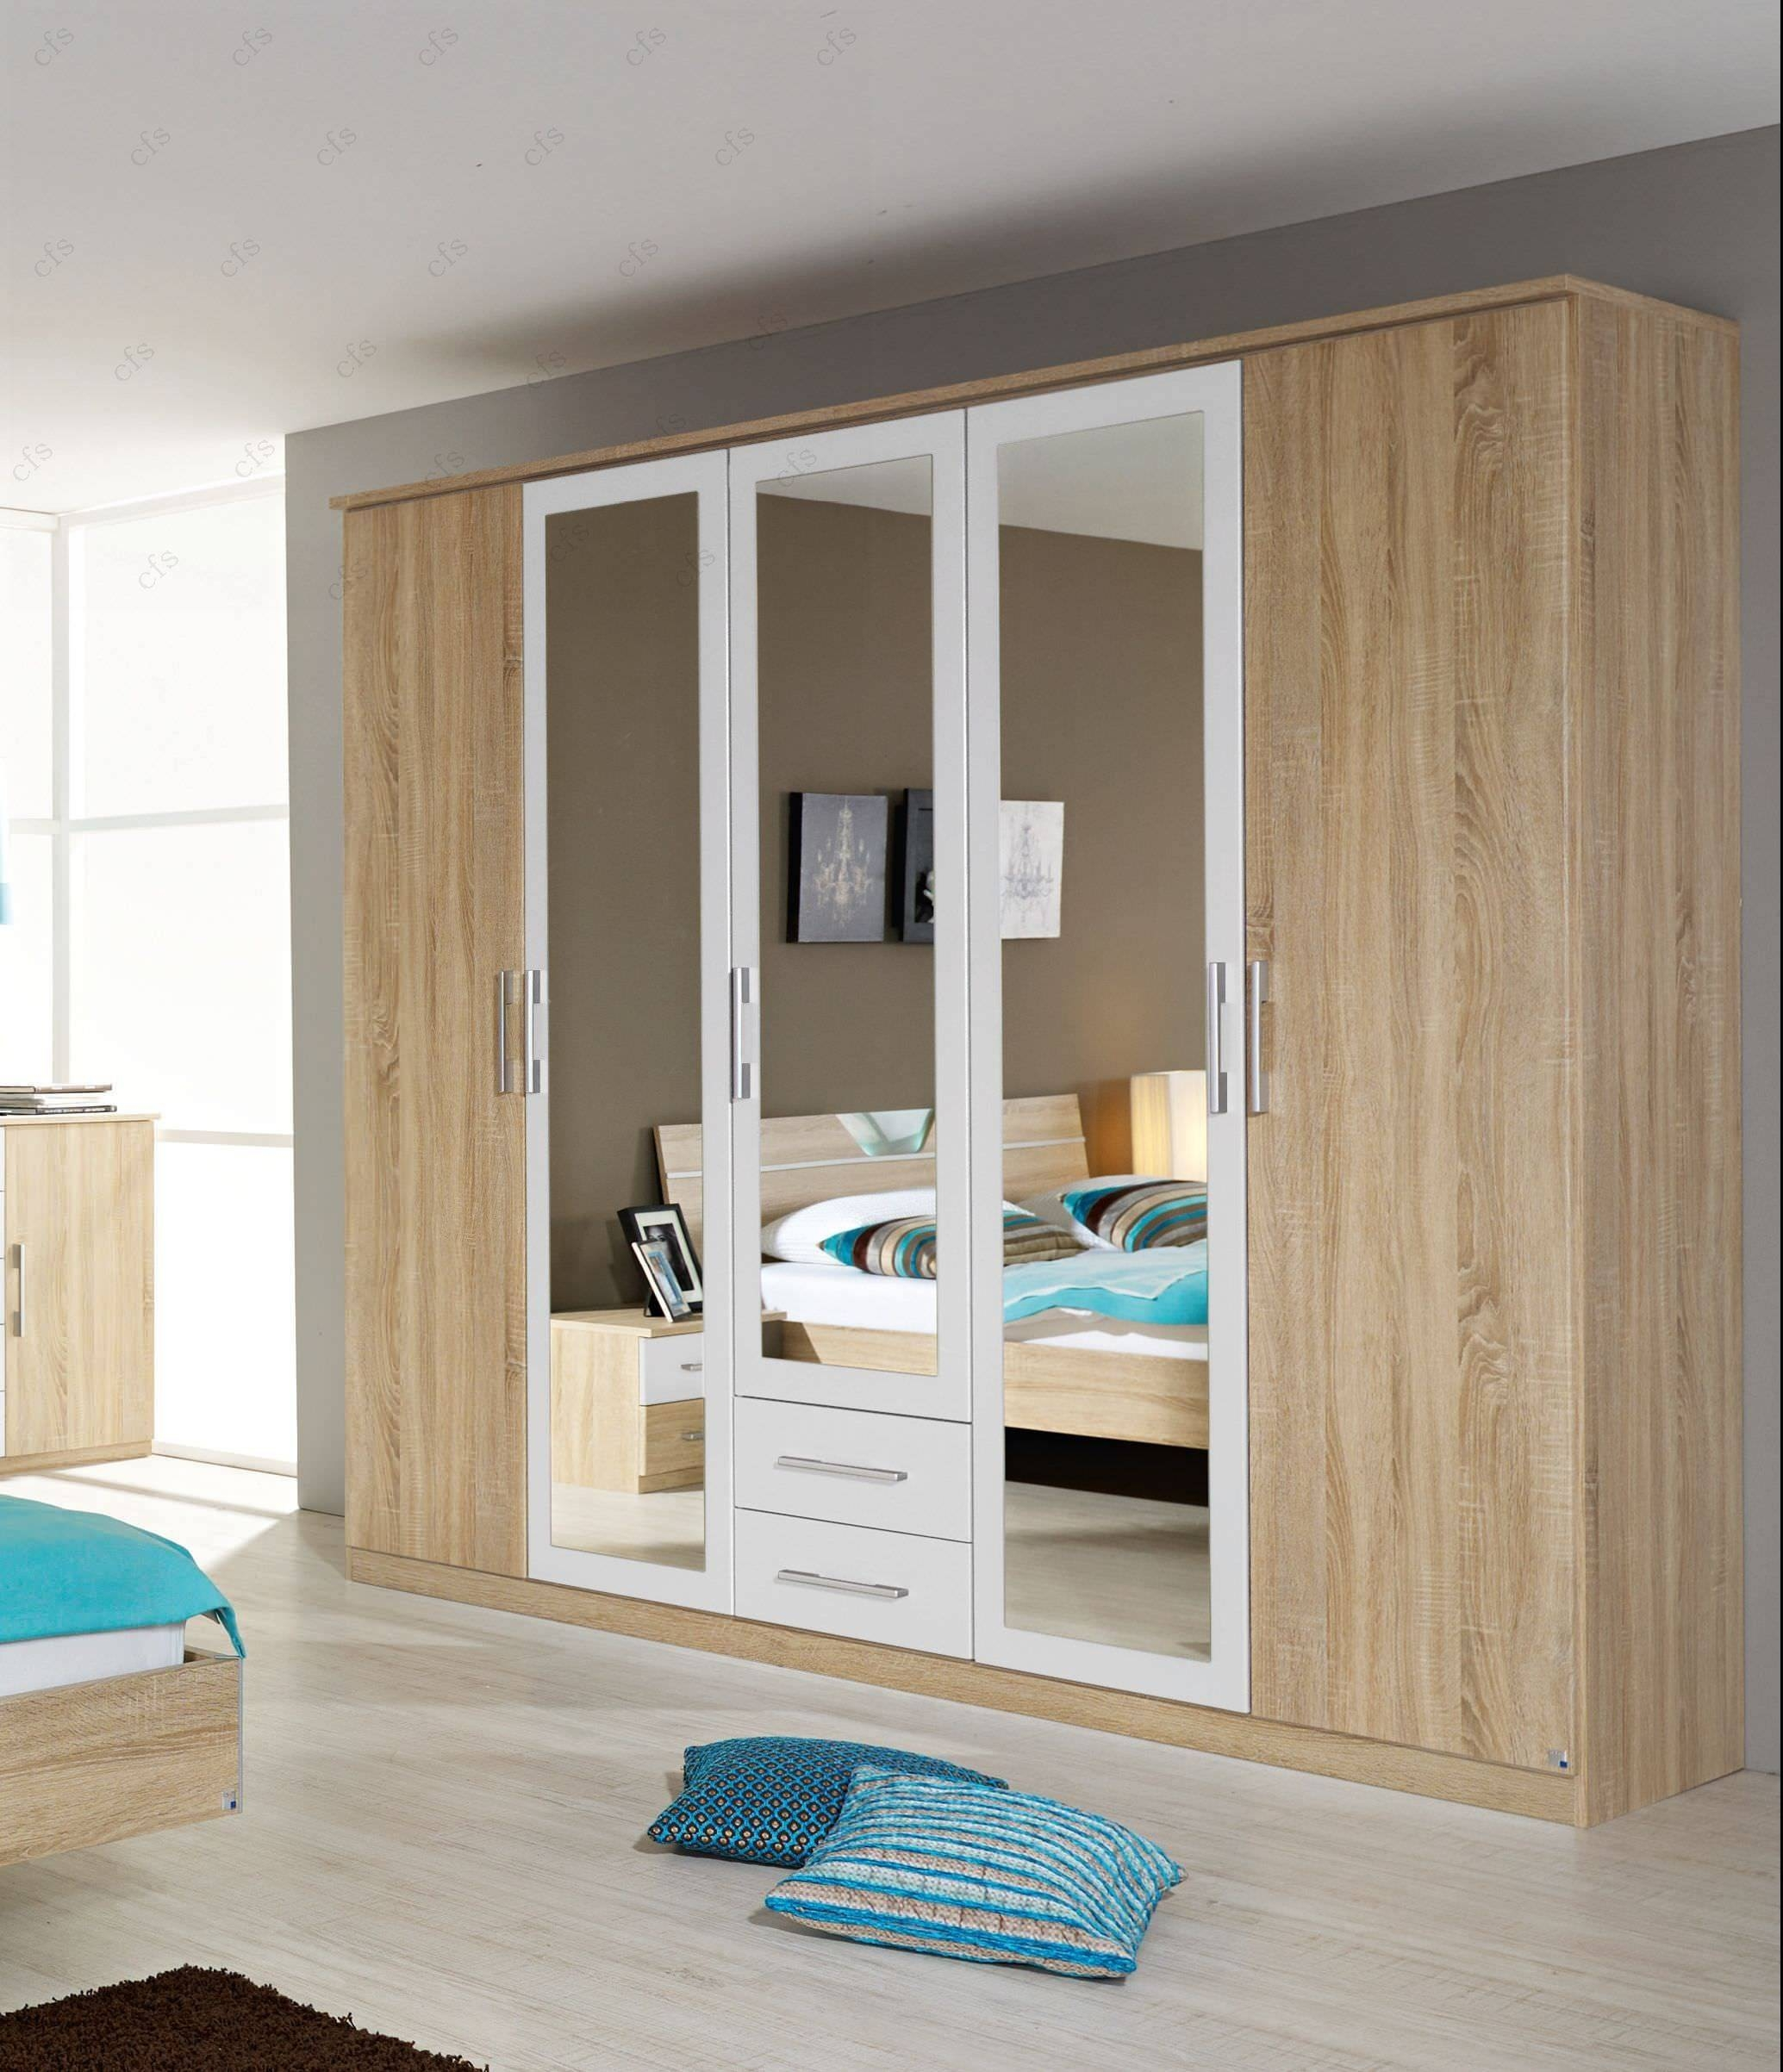 Rauch Furniture | Valence 5 Door Mirror Wardrobe | Bedsdirectuk pertaining to Mirror Wardrobes (Image 9 of 15)